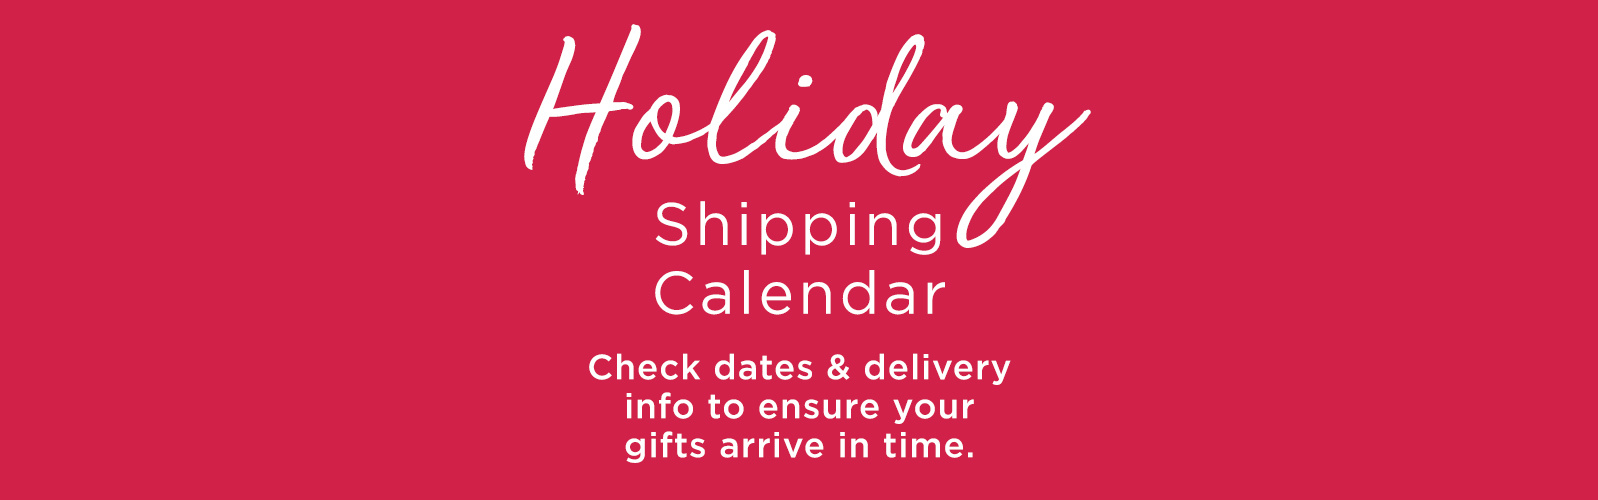 Holiday Shipping Calendar.  Check dates & delivery info to ensure your gifts arrive in time.